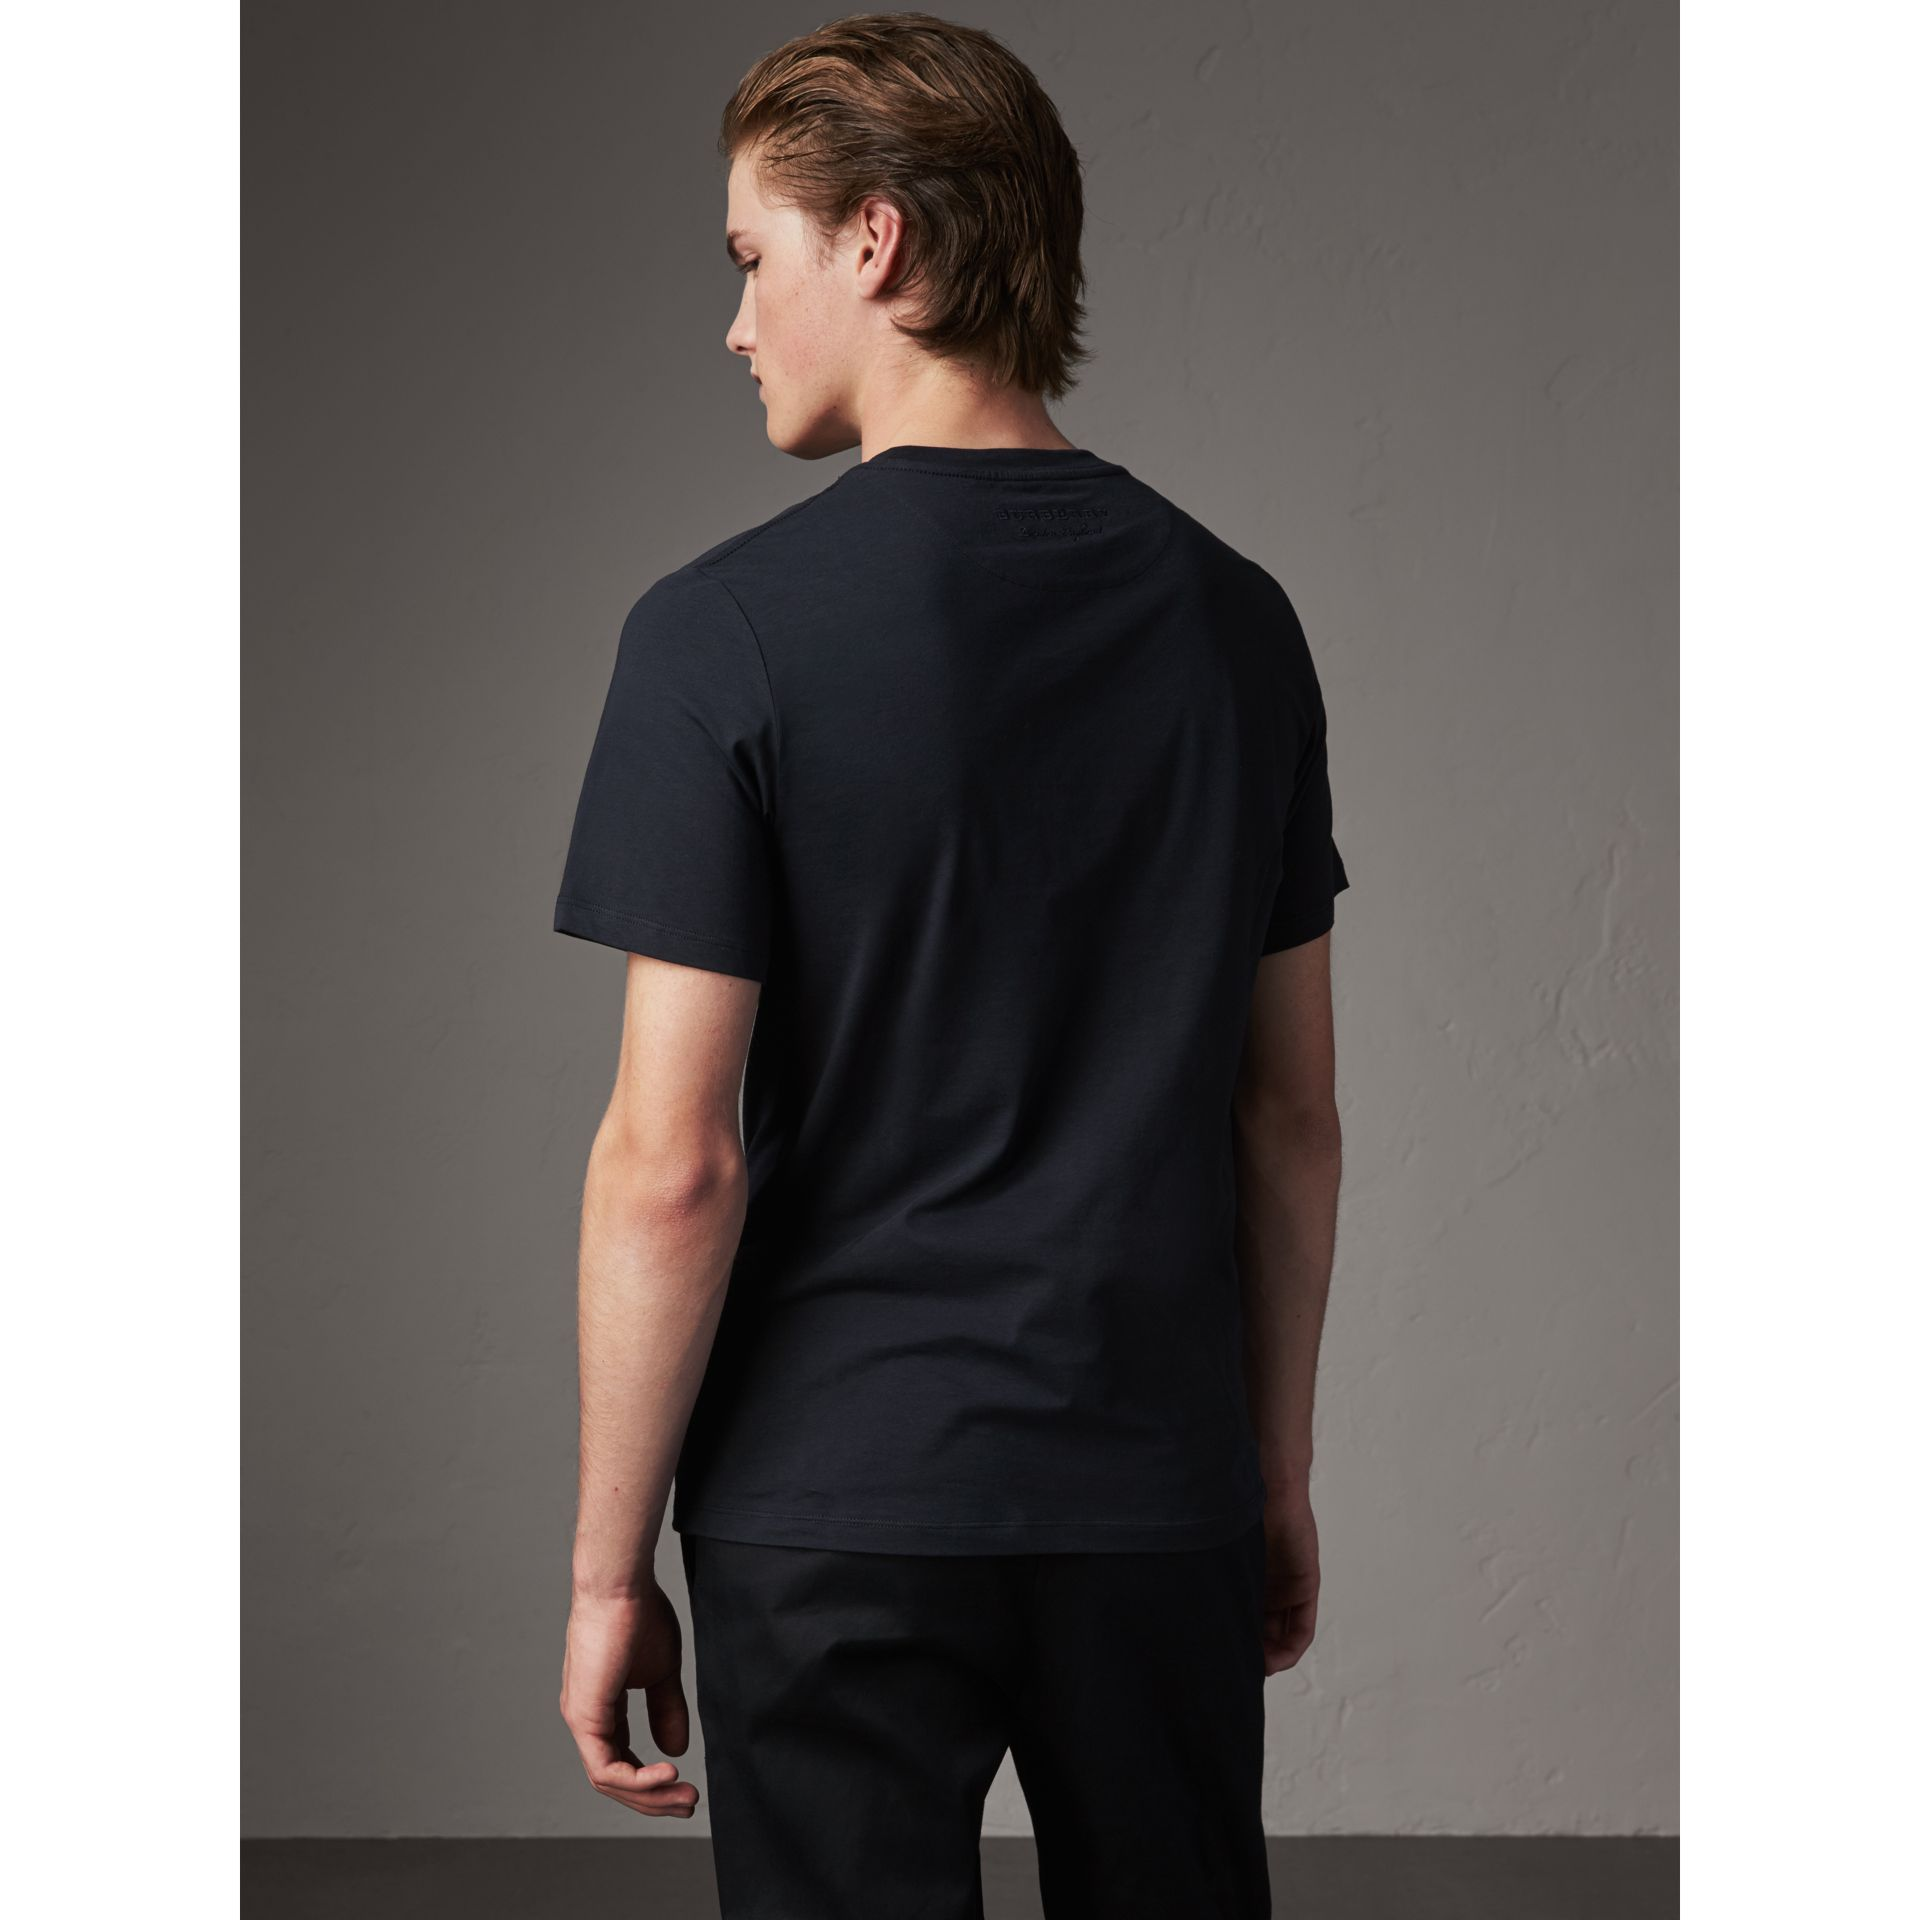 Sketch Appliqué Cotton T-shirt in Navy - Men | Burberry - gallery image 2